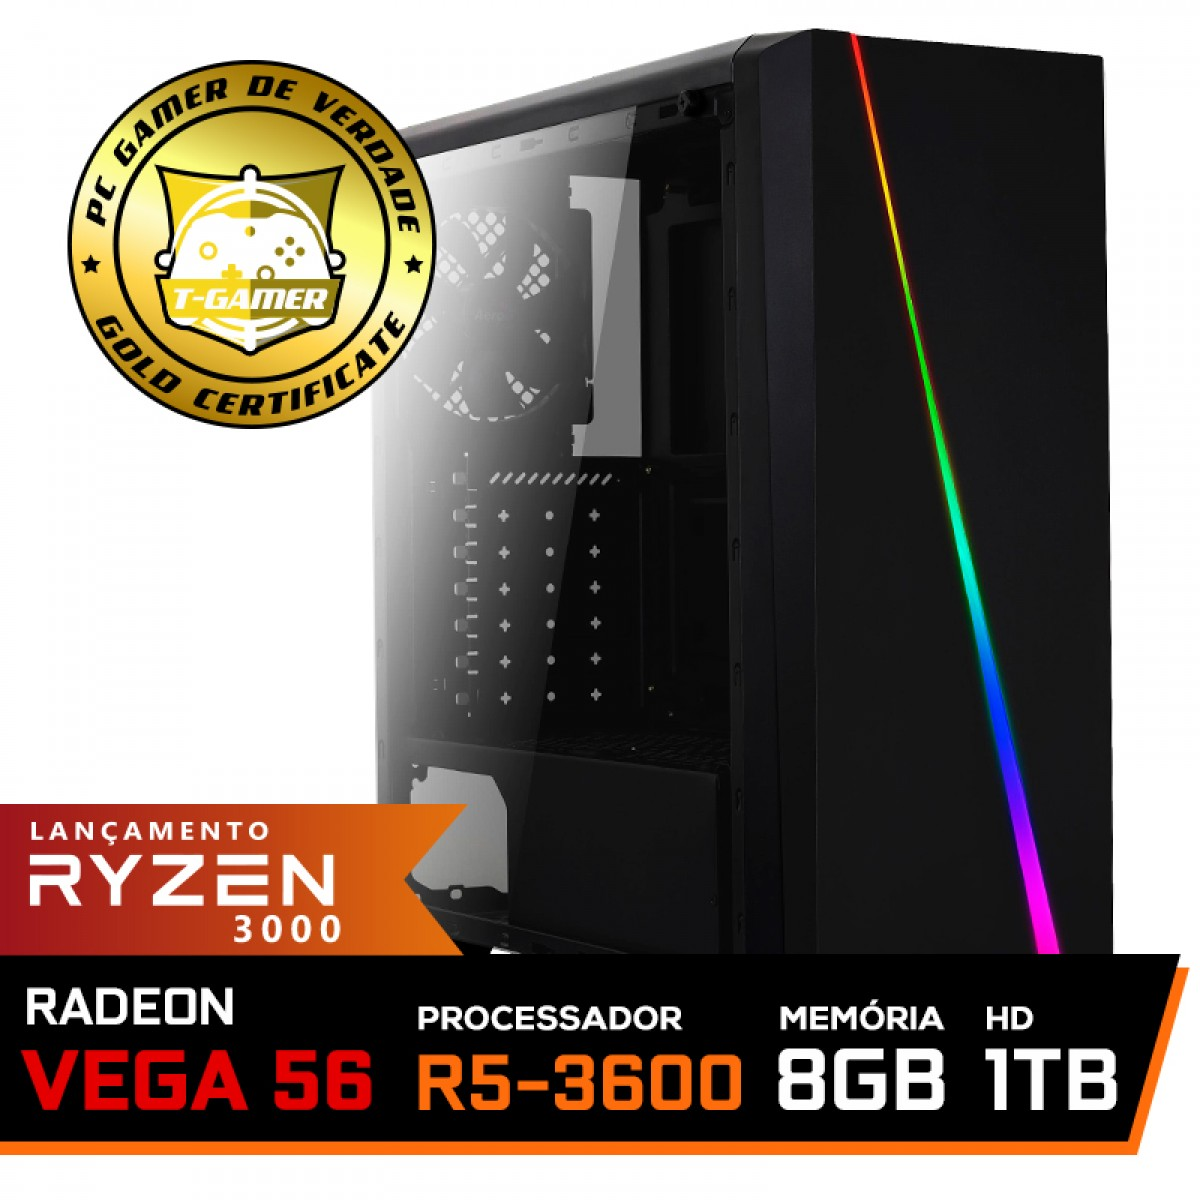 Pc Gamer Super T-Commander Lvl-4 AMD Ryzen 5 3600 / Radeon Vega 56 8GB / DDR4 8GB / HD 1TB / 600W / RZ3